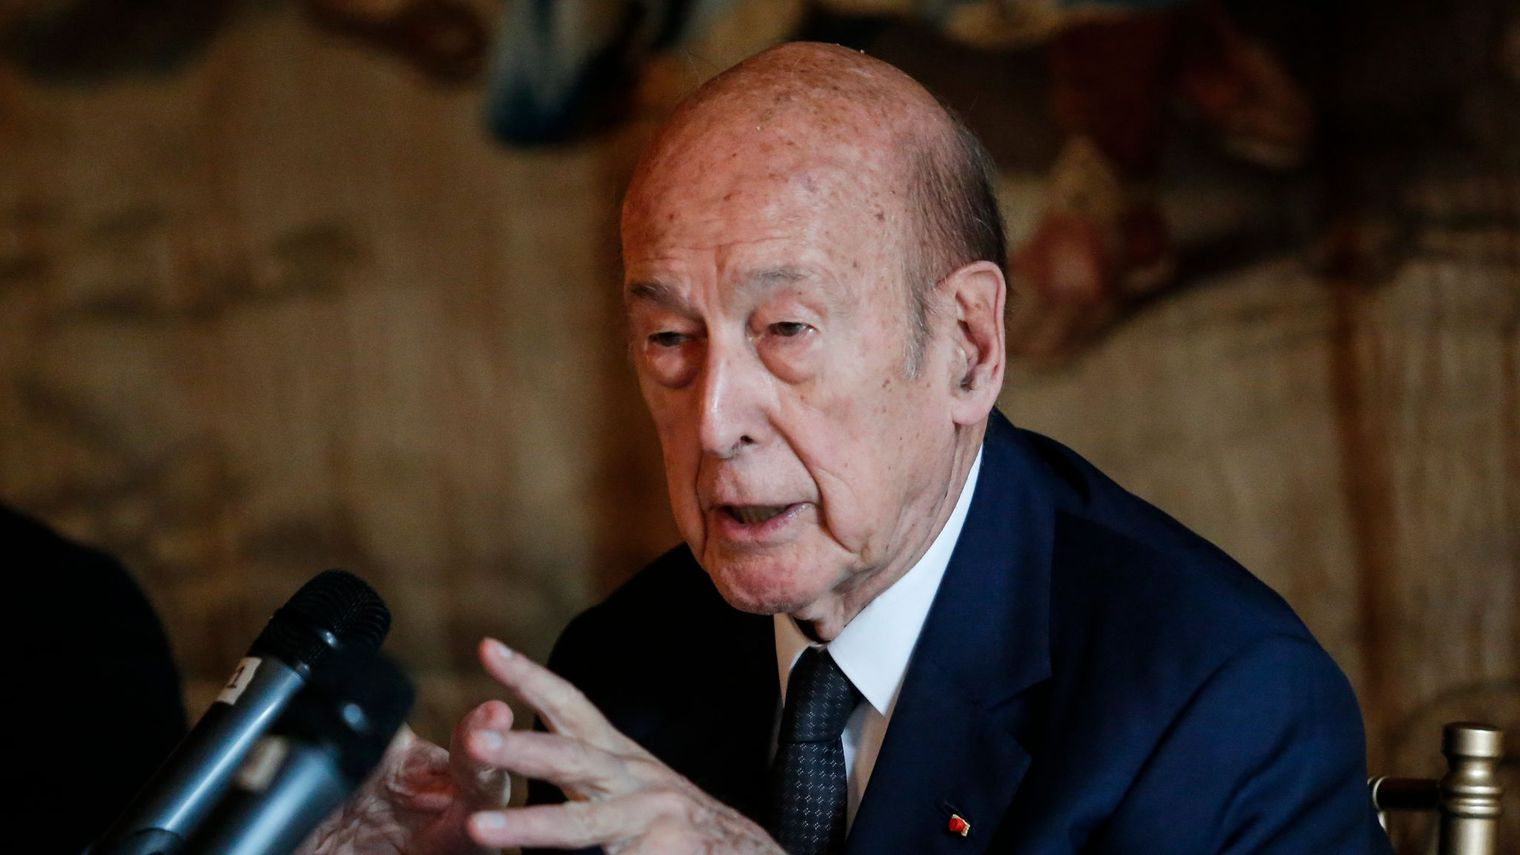 valery-giscard-d-estaing-participe-a-une-conference-sur-l-europe-le-5-juin-2015-a-new-york_5372393